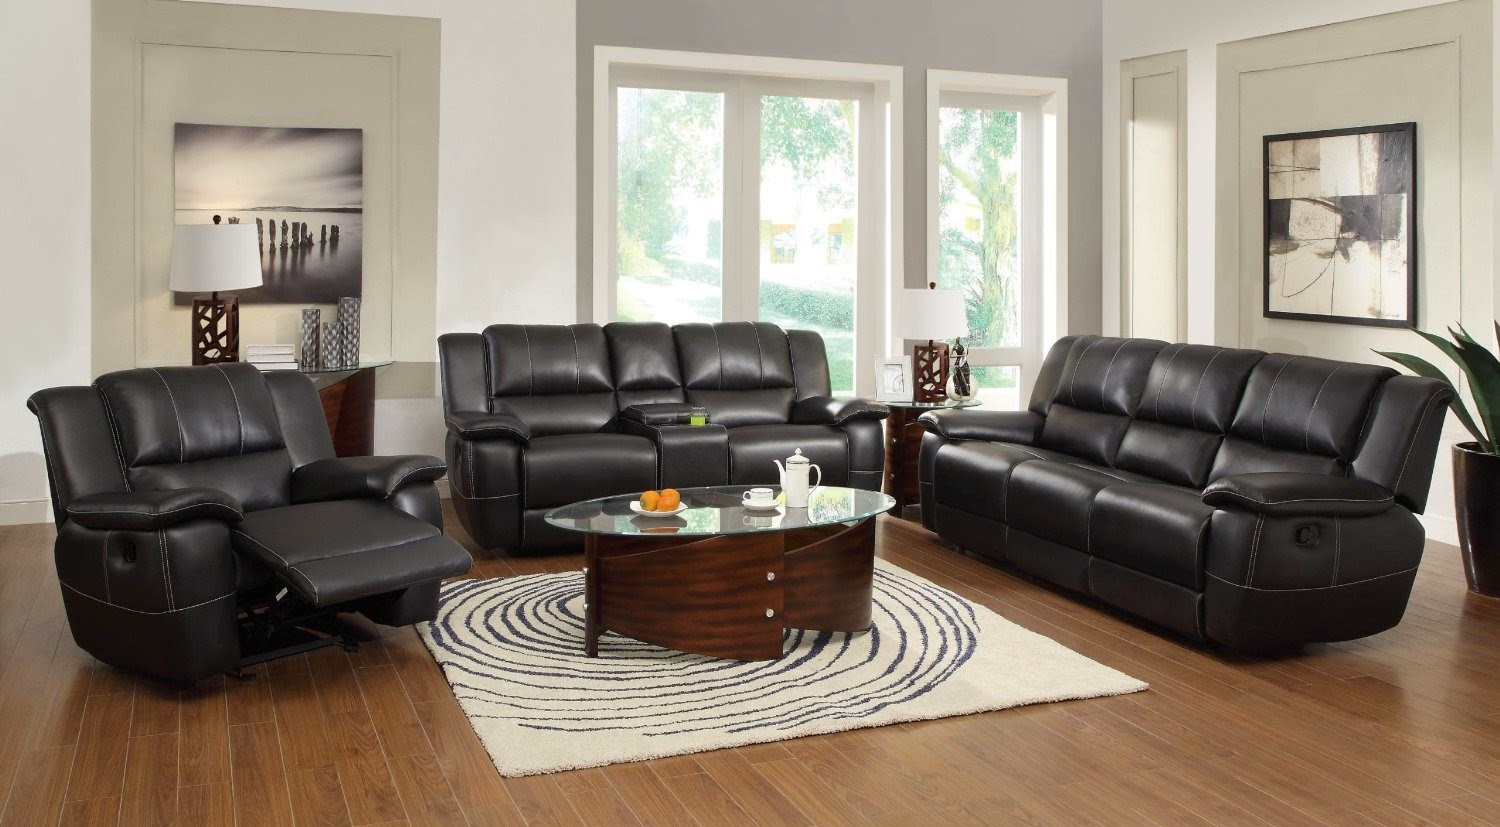 Coaster Home Black Cheap Faux Leather Recliner Sofas & The Best Reclining Sofas Ratings Reviews: Cheap Faux Leather ... islam-shia.org